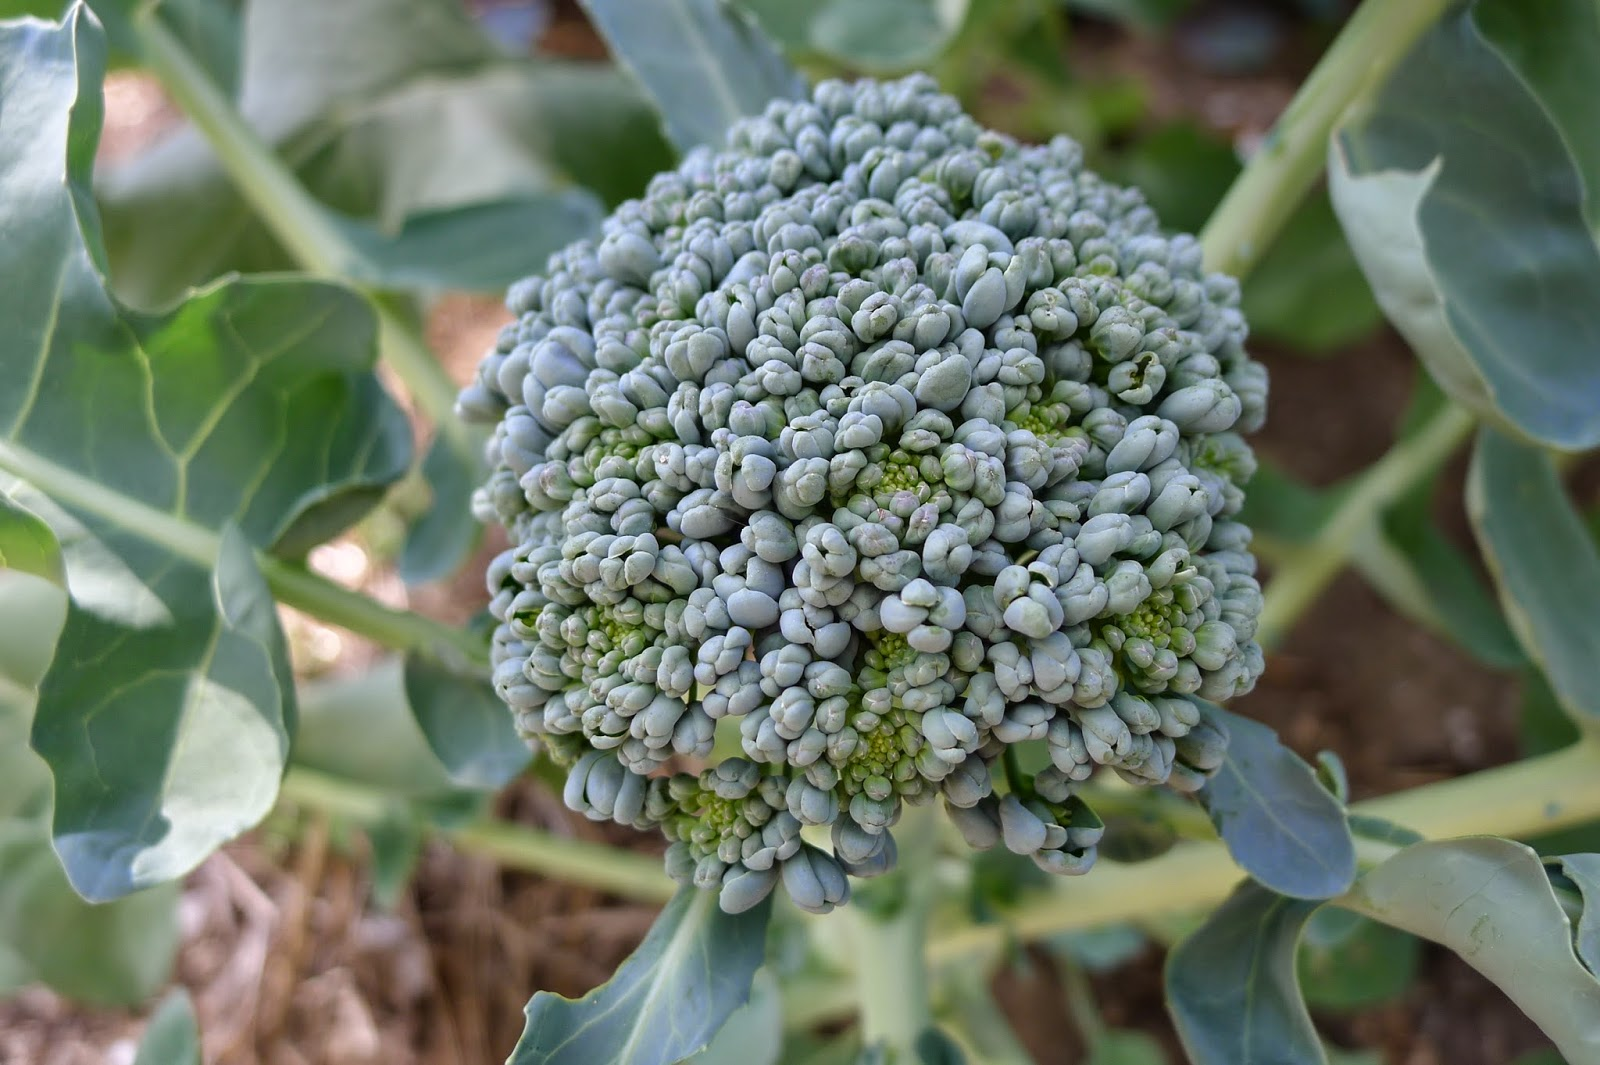 Broccoli crown, urban farming